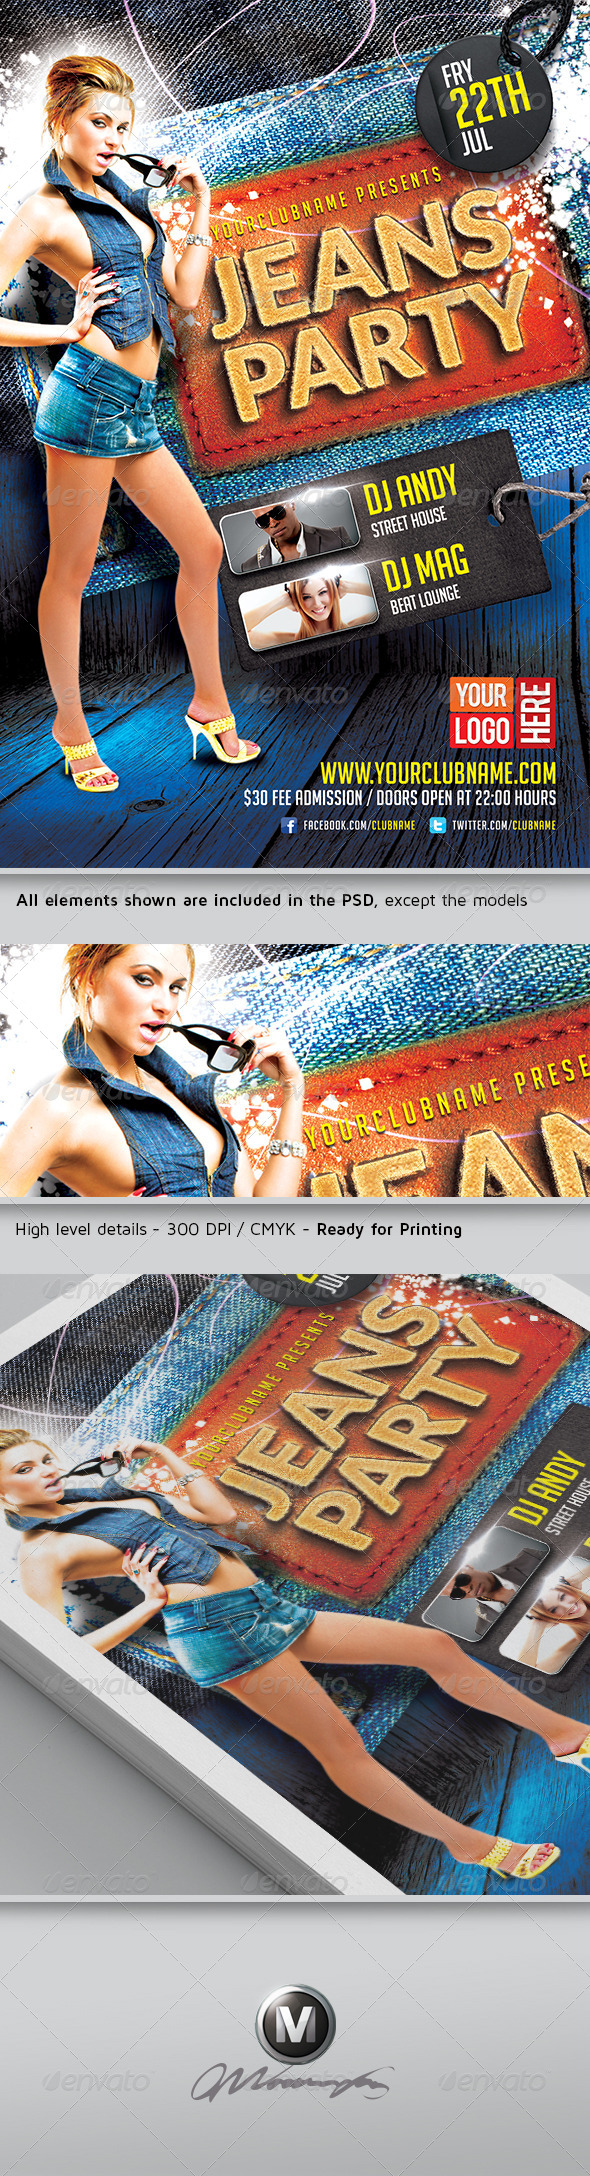 Jeans Party Flyer Template - Events Flyers